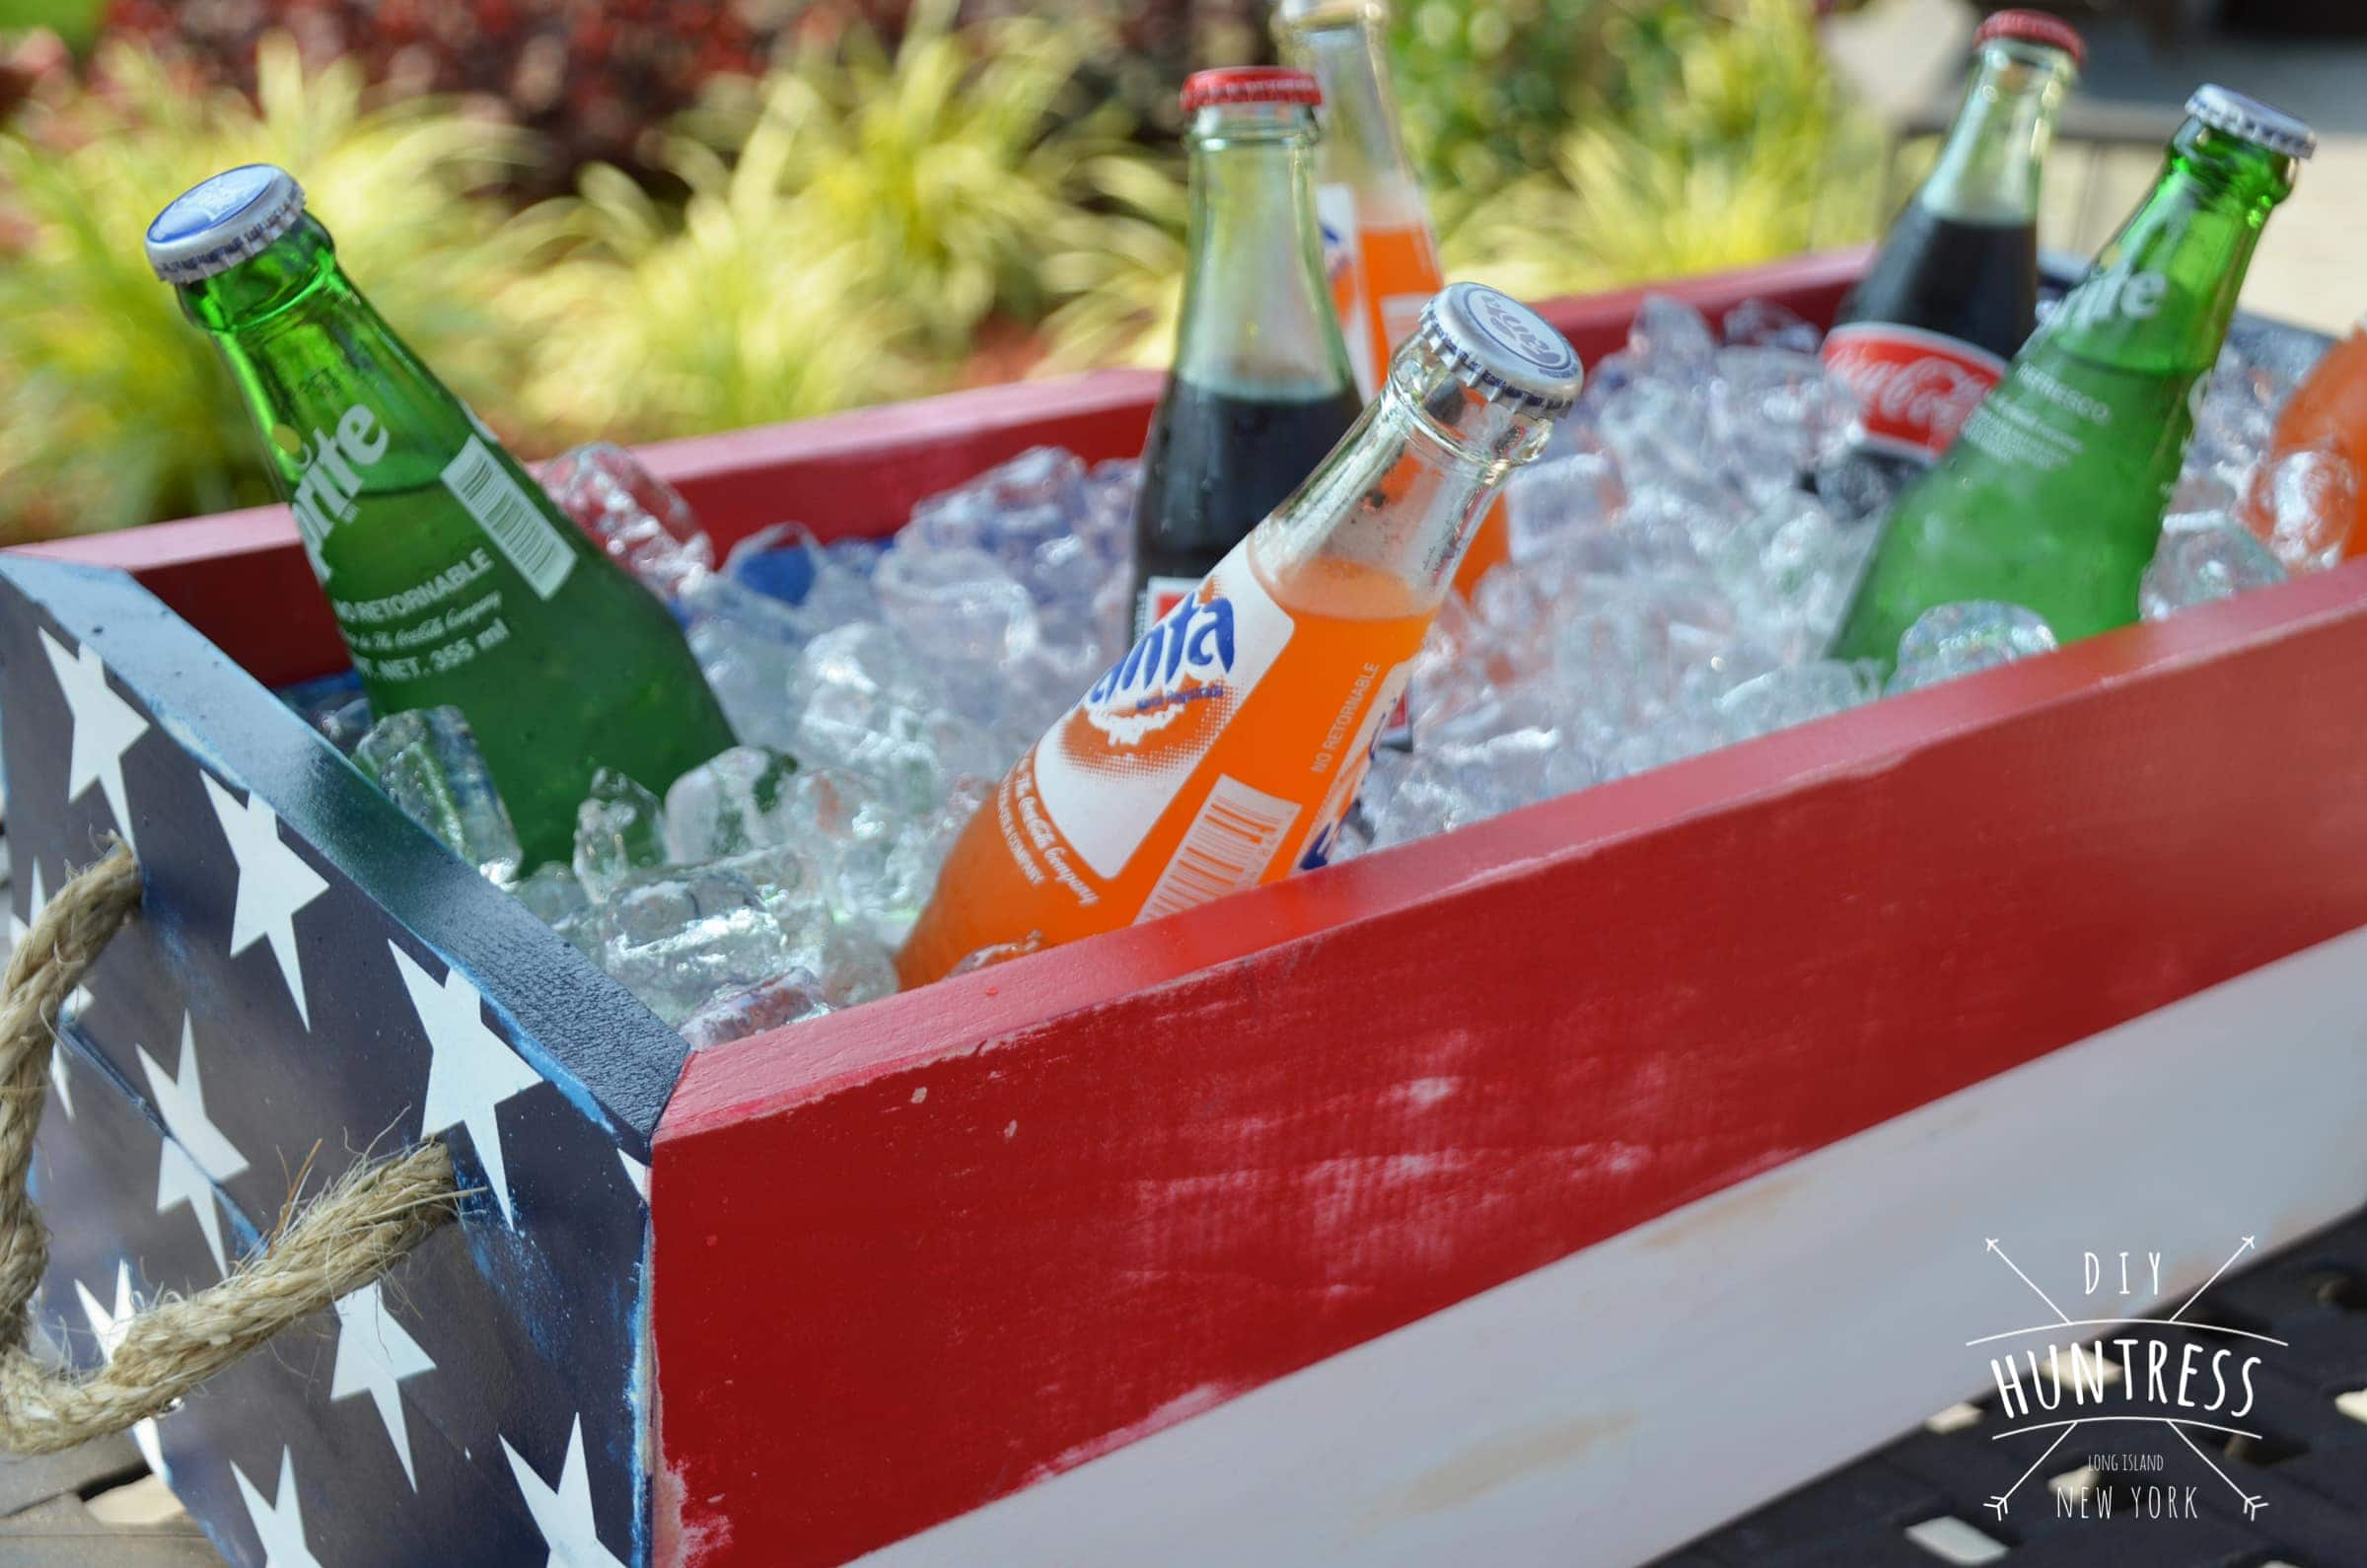 DIY_Huntress_Patriotic_Wood_Cooler-3